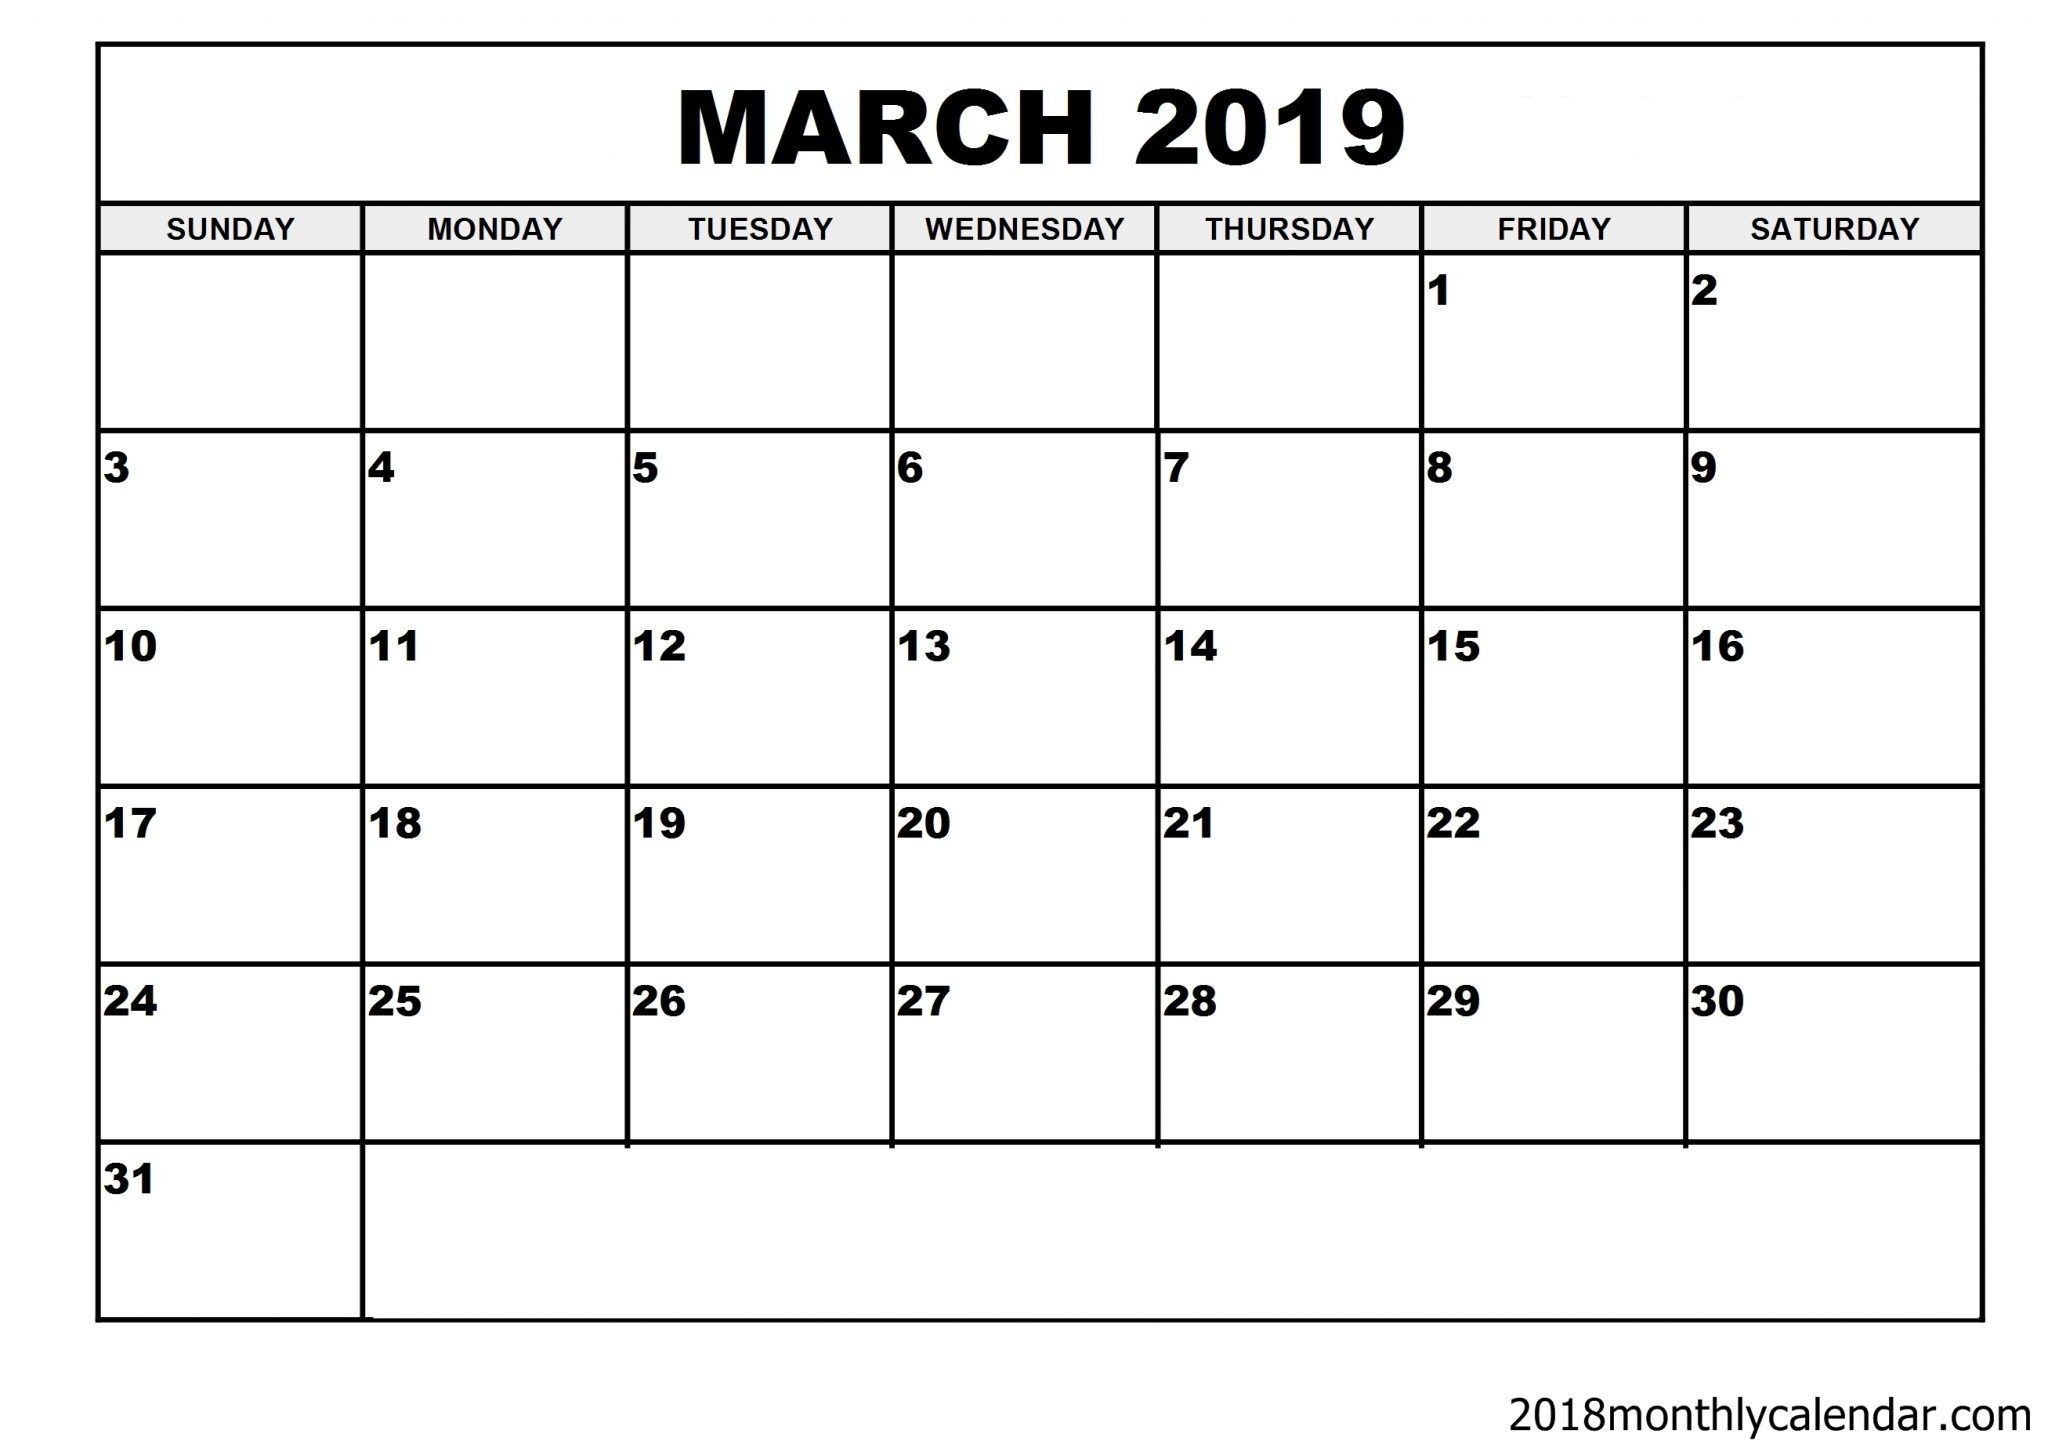 hindu calendar march 2019 mas actual 149 best free march 2019 calendar printable templates images in 2019 of hindu calendar march 2019